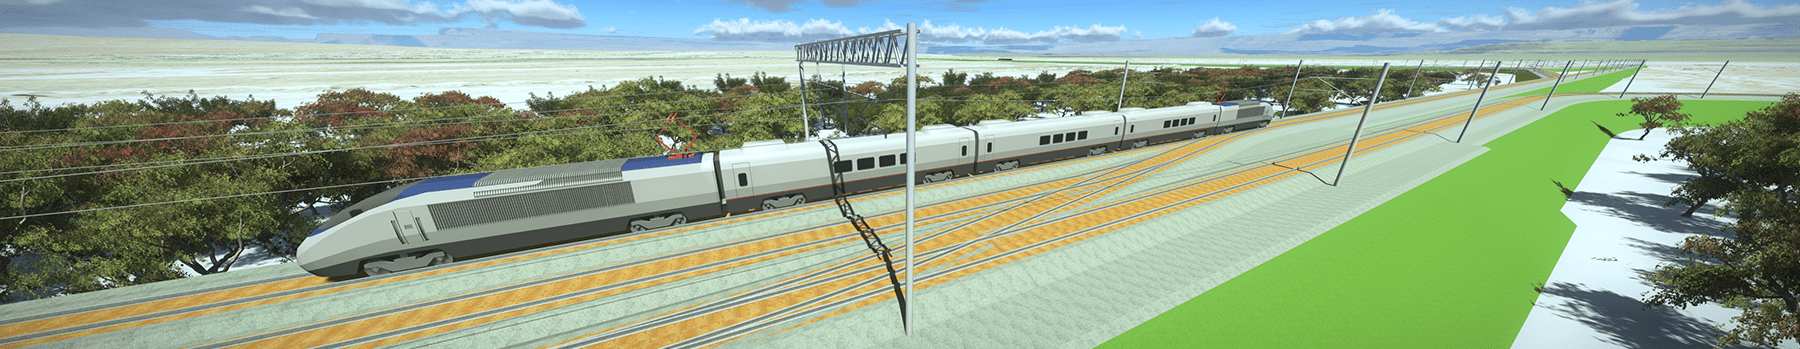 Conceptual Rail Design Software - OpenRail ConceptStation